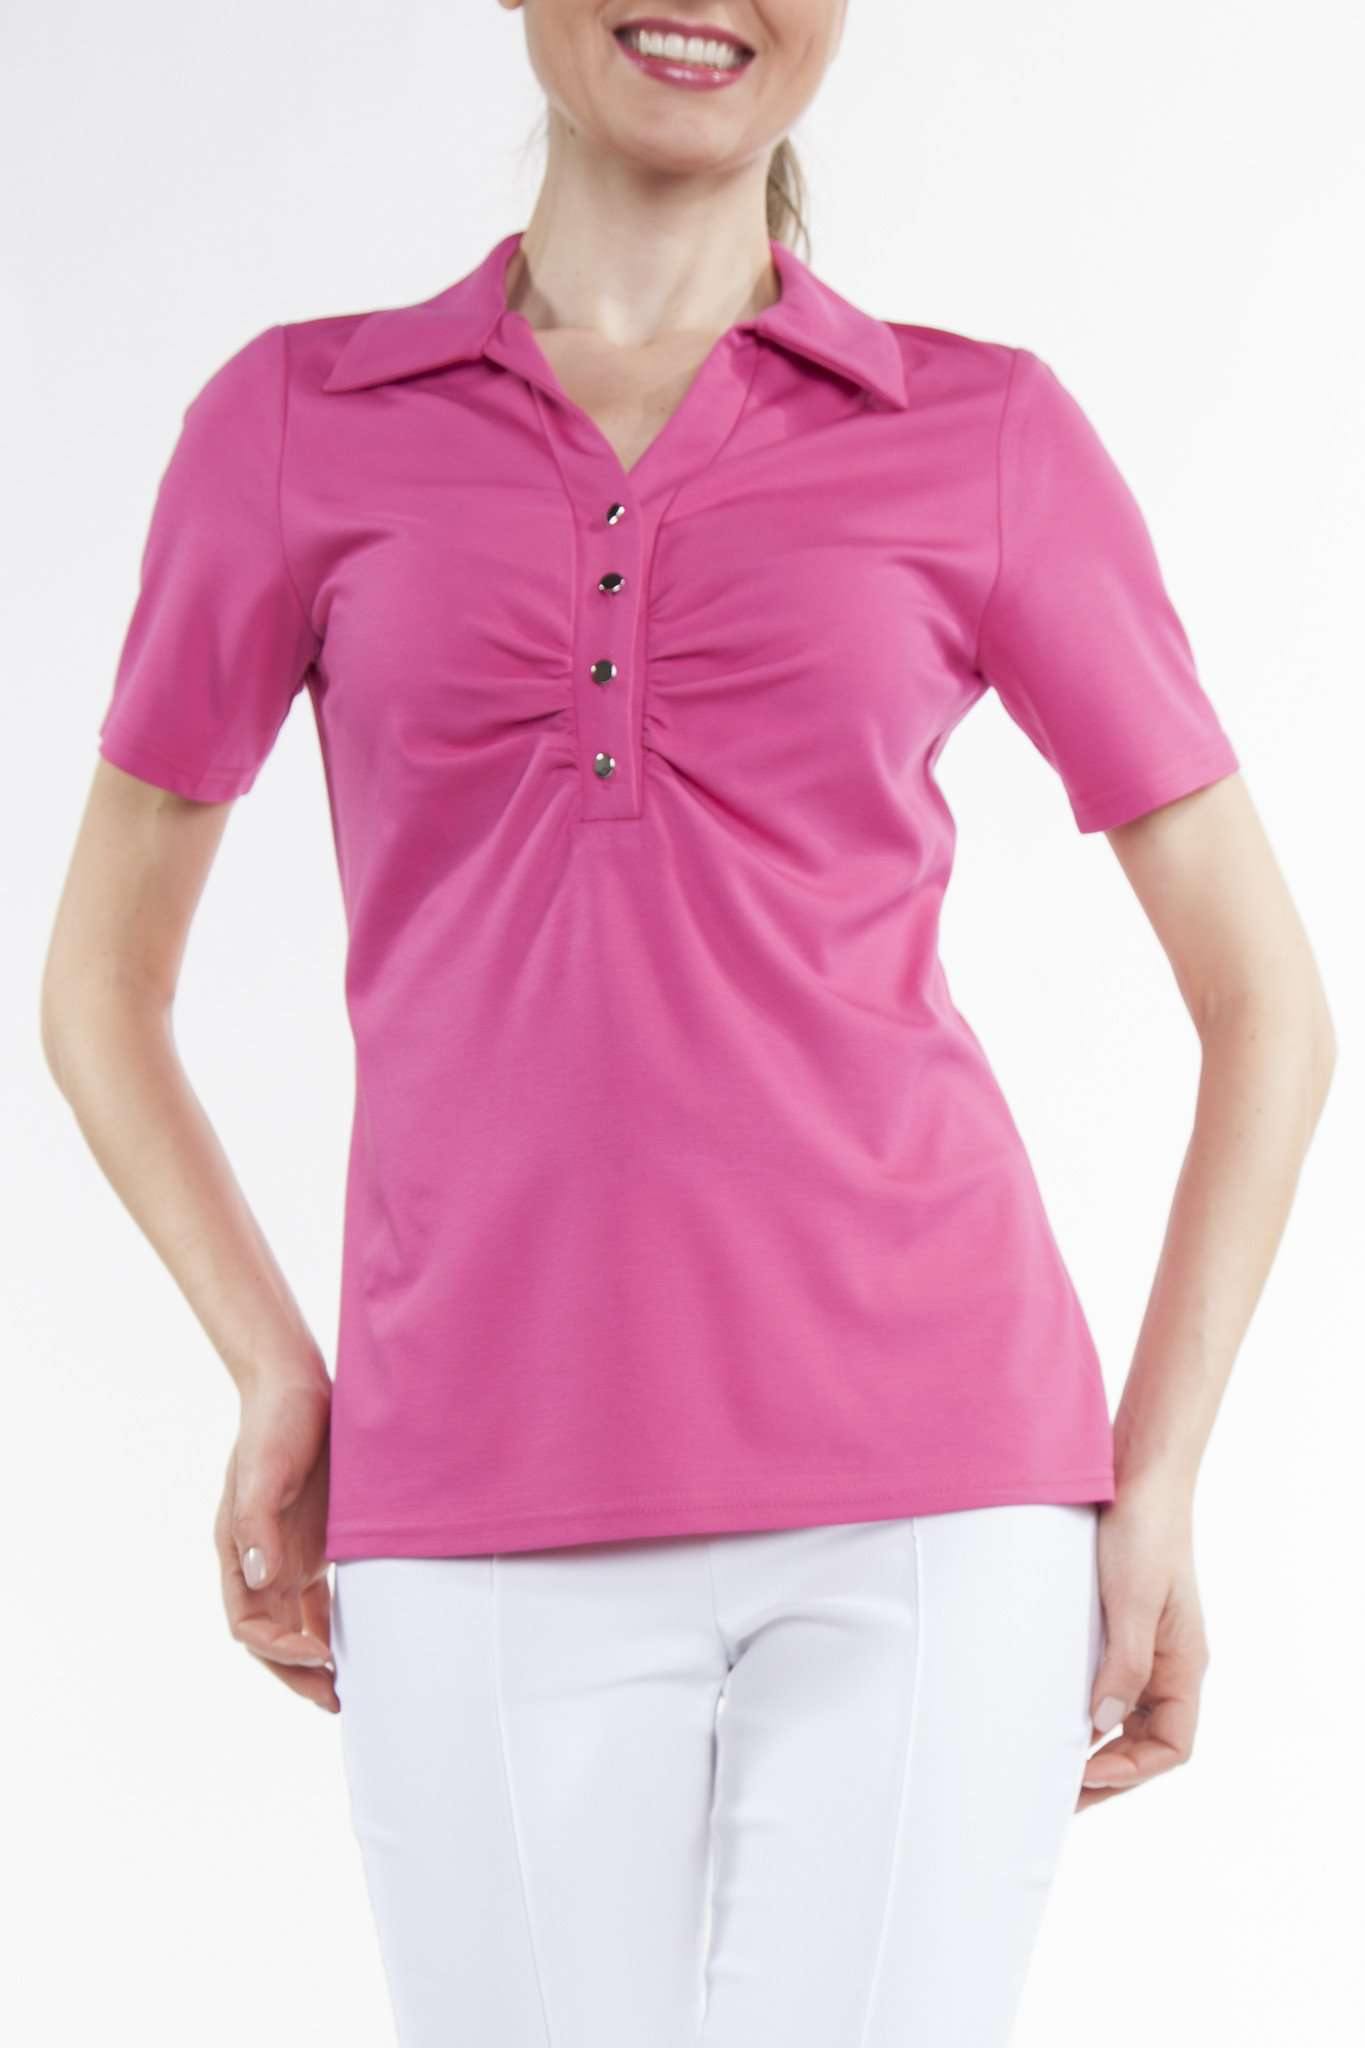 Womens Pink Polo Top - Yvonne Marie